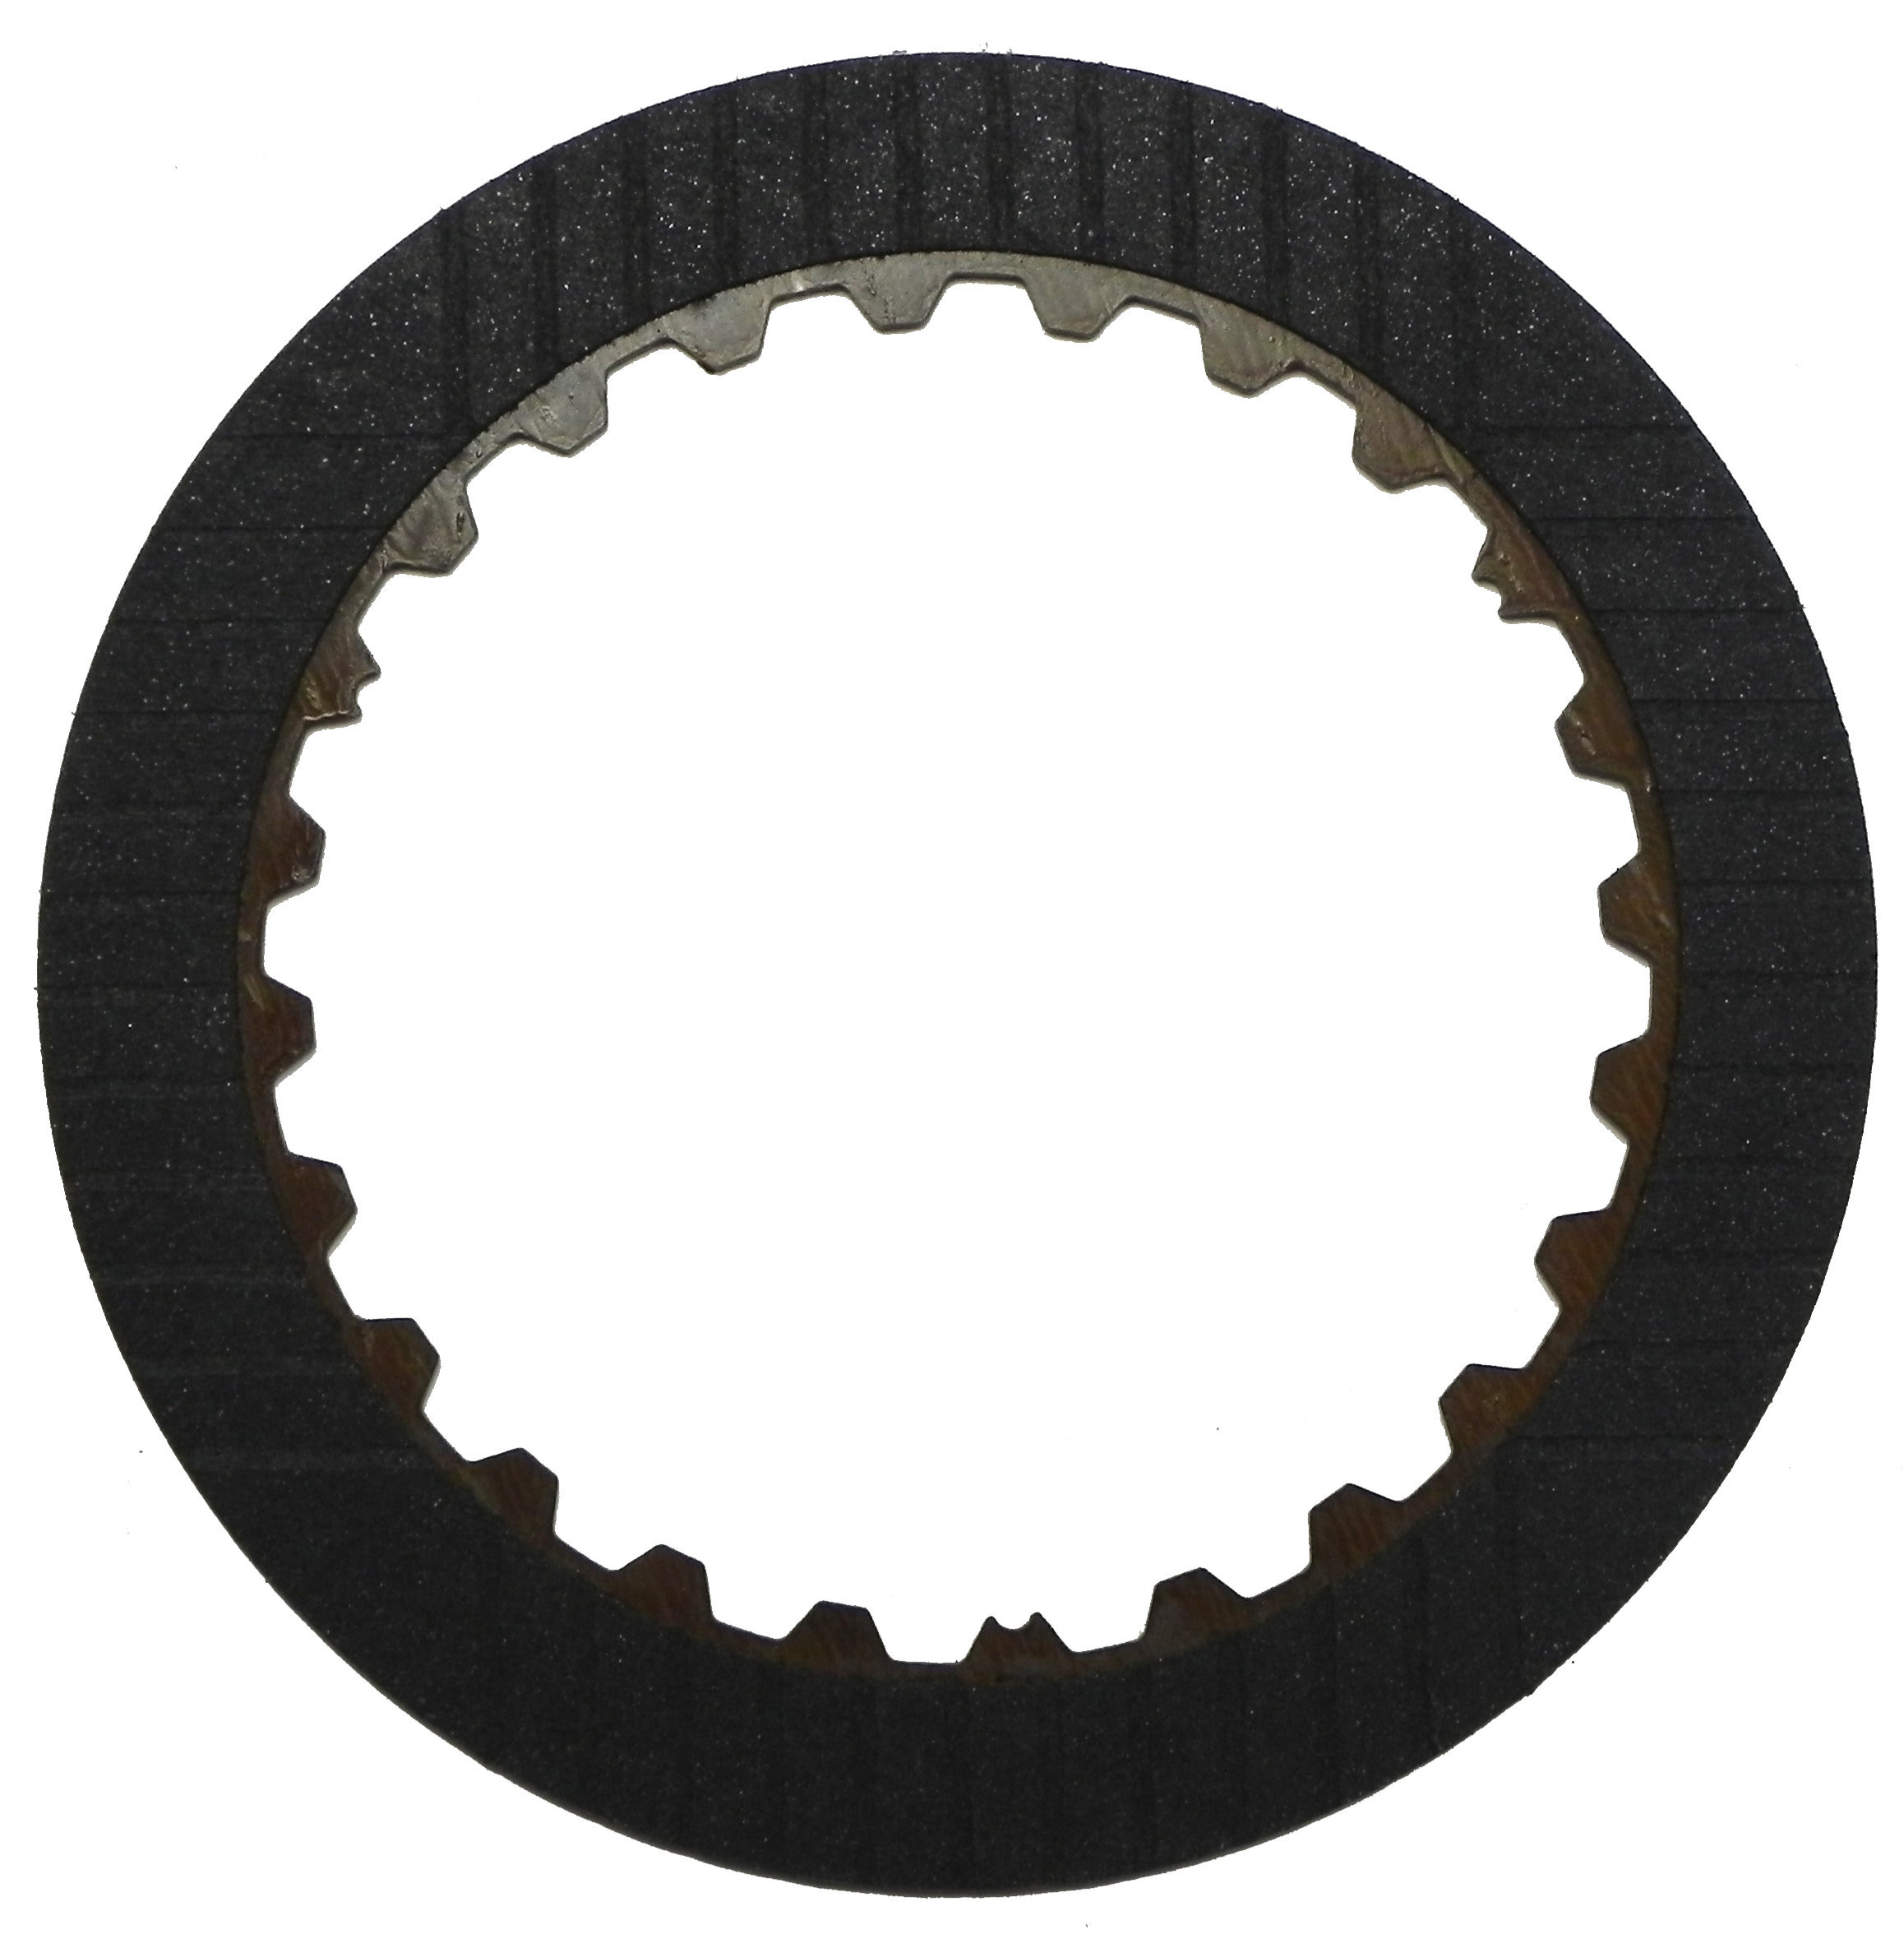 R572630 | 1997-ON Friction Clutch Plate High Energy K3 Clutch Single Sided, ID Spline High Energy